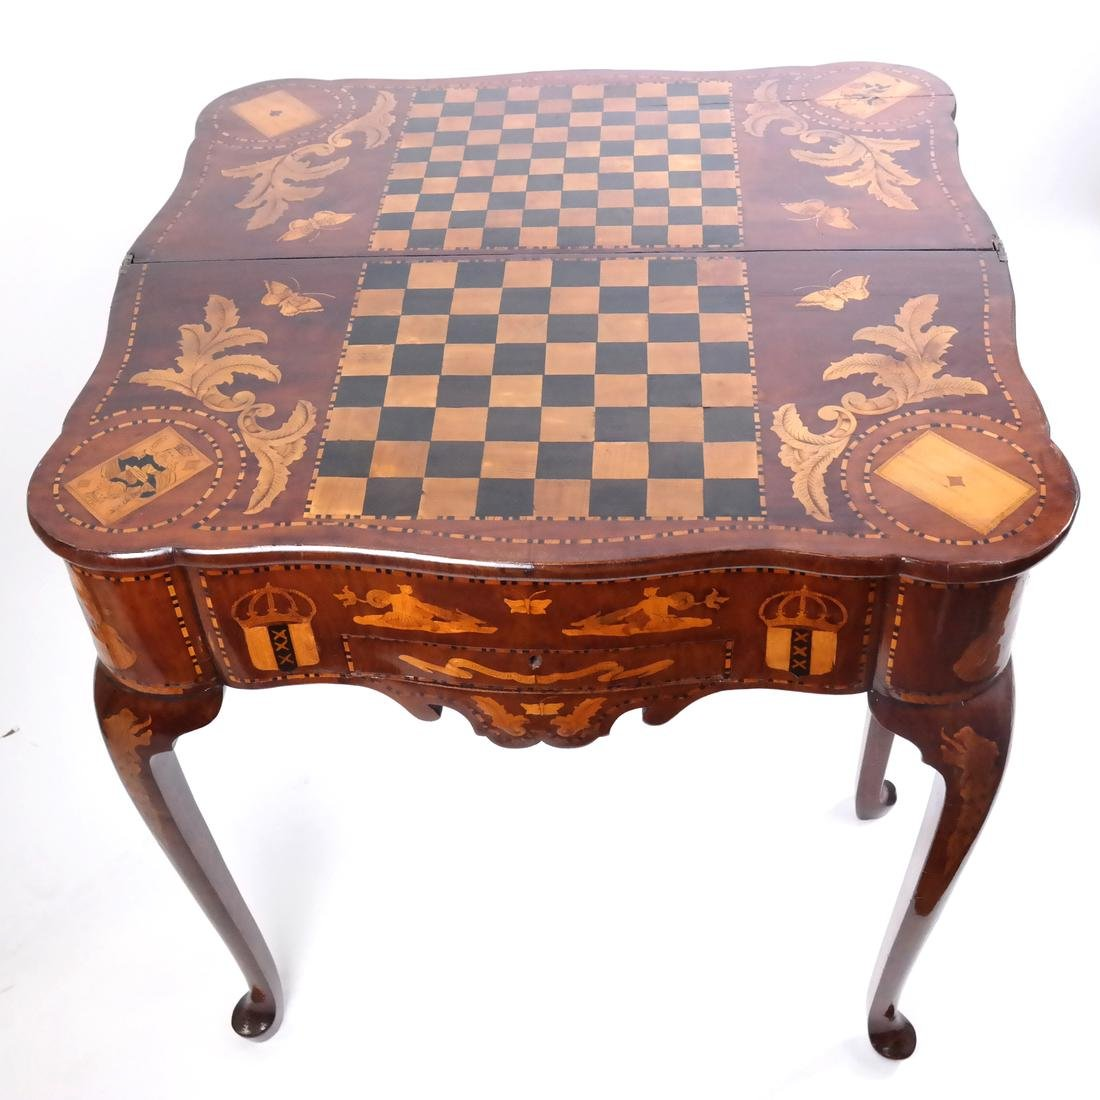 Antique Continental Games Table - 4